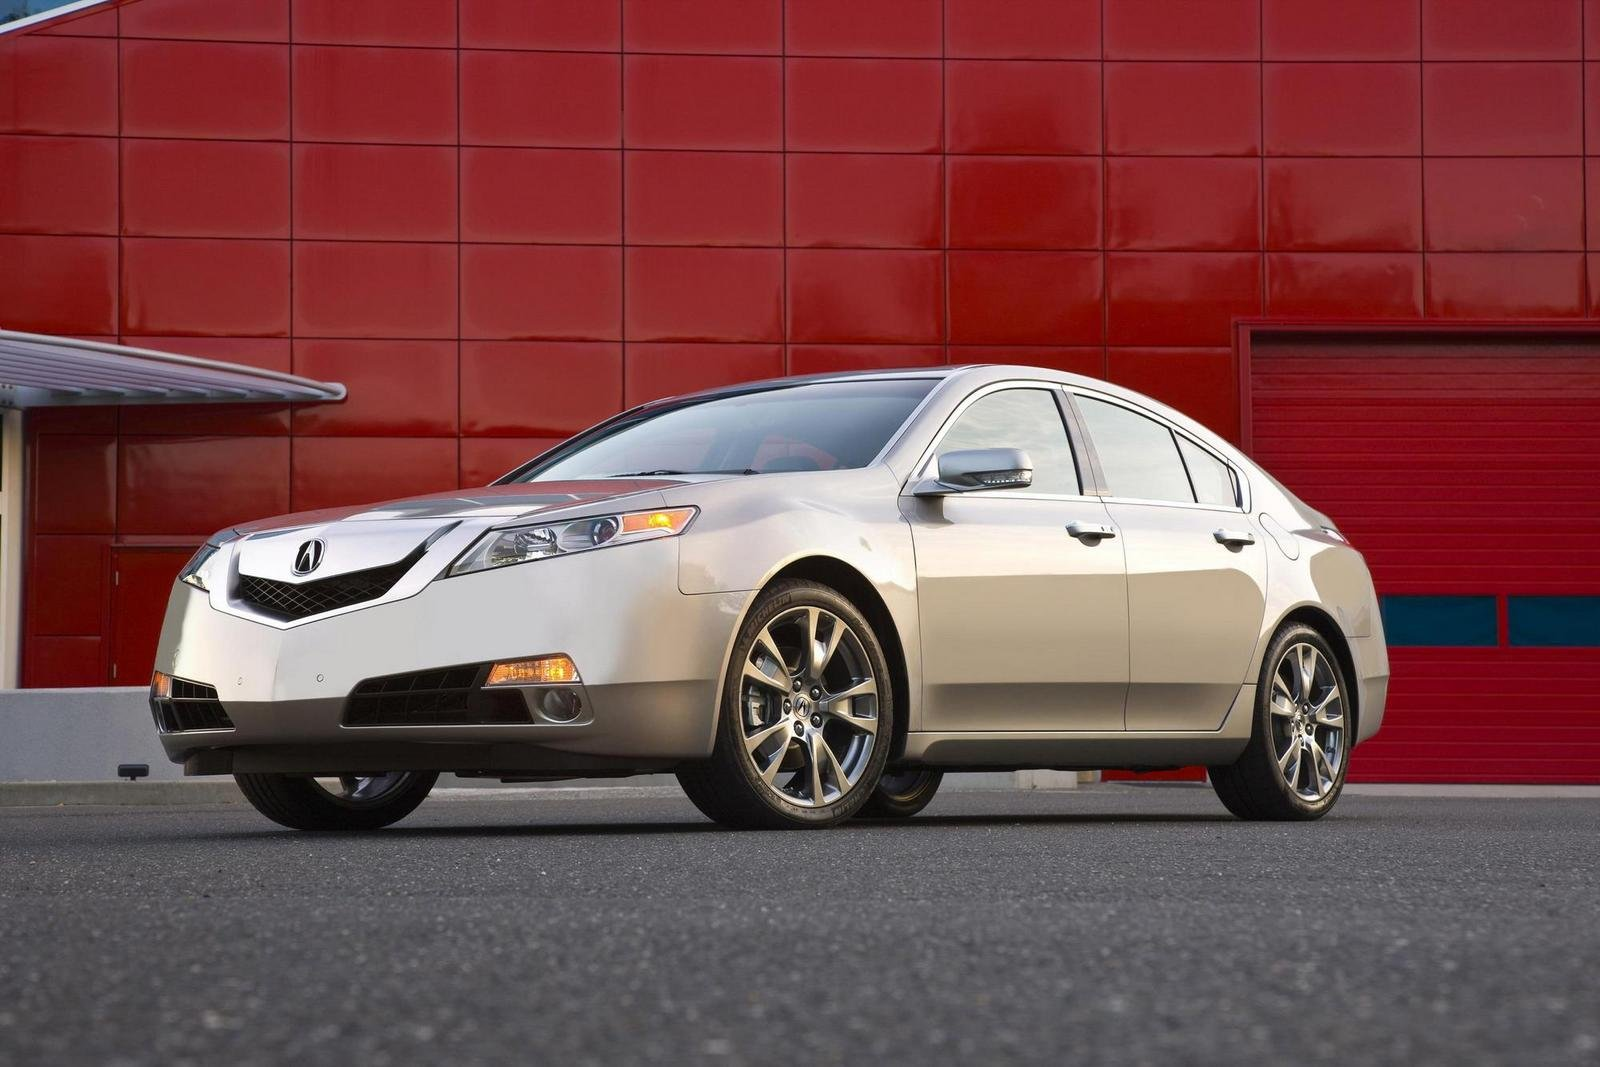 2010 acura tl picture 326167 car review top speed. Black Bedroom Furniture Sets. Home Design Ideas